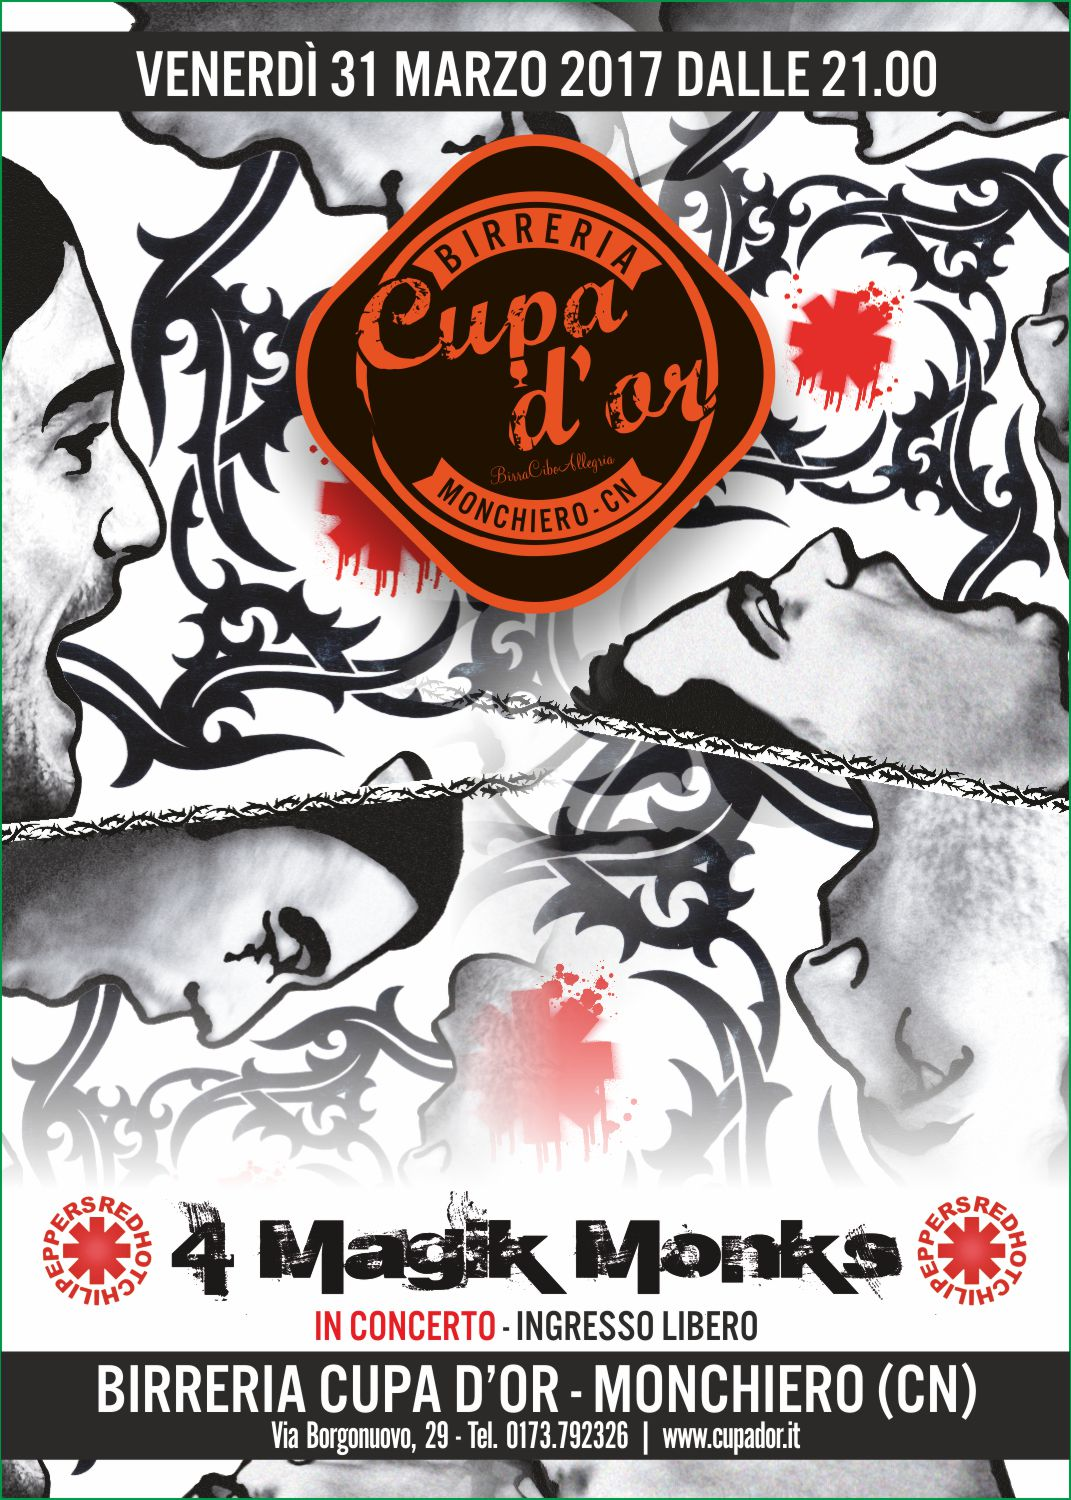 4 magik monks – tributo rhcp – live alla cupa d'or